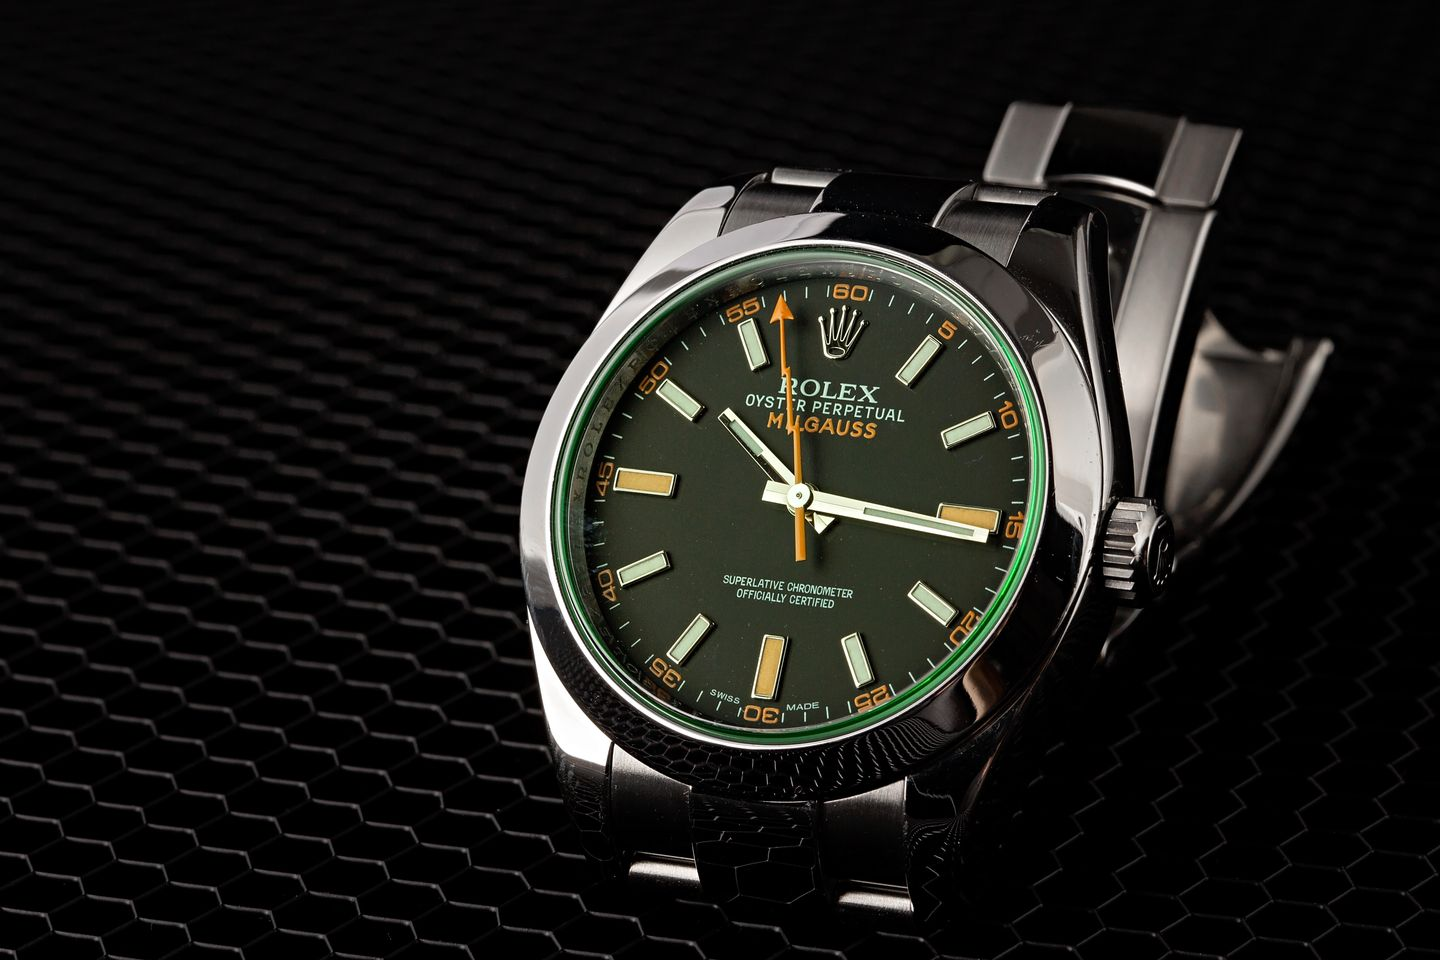 Antimagnetic Rolex Milgauss Watches